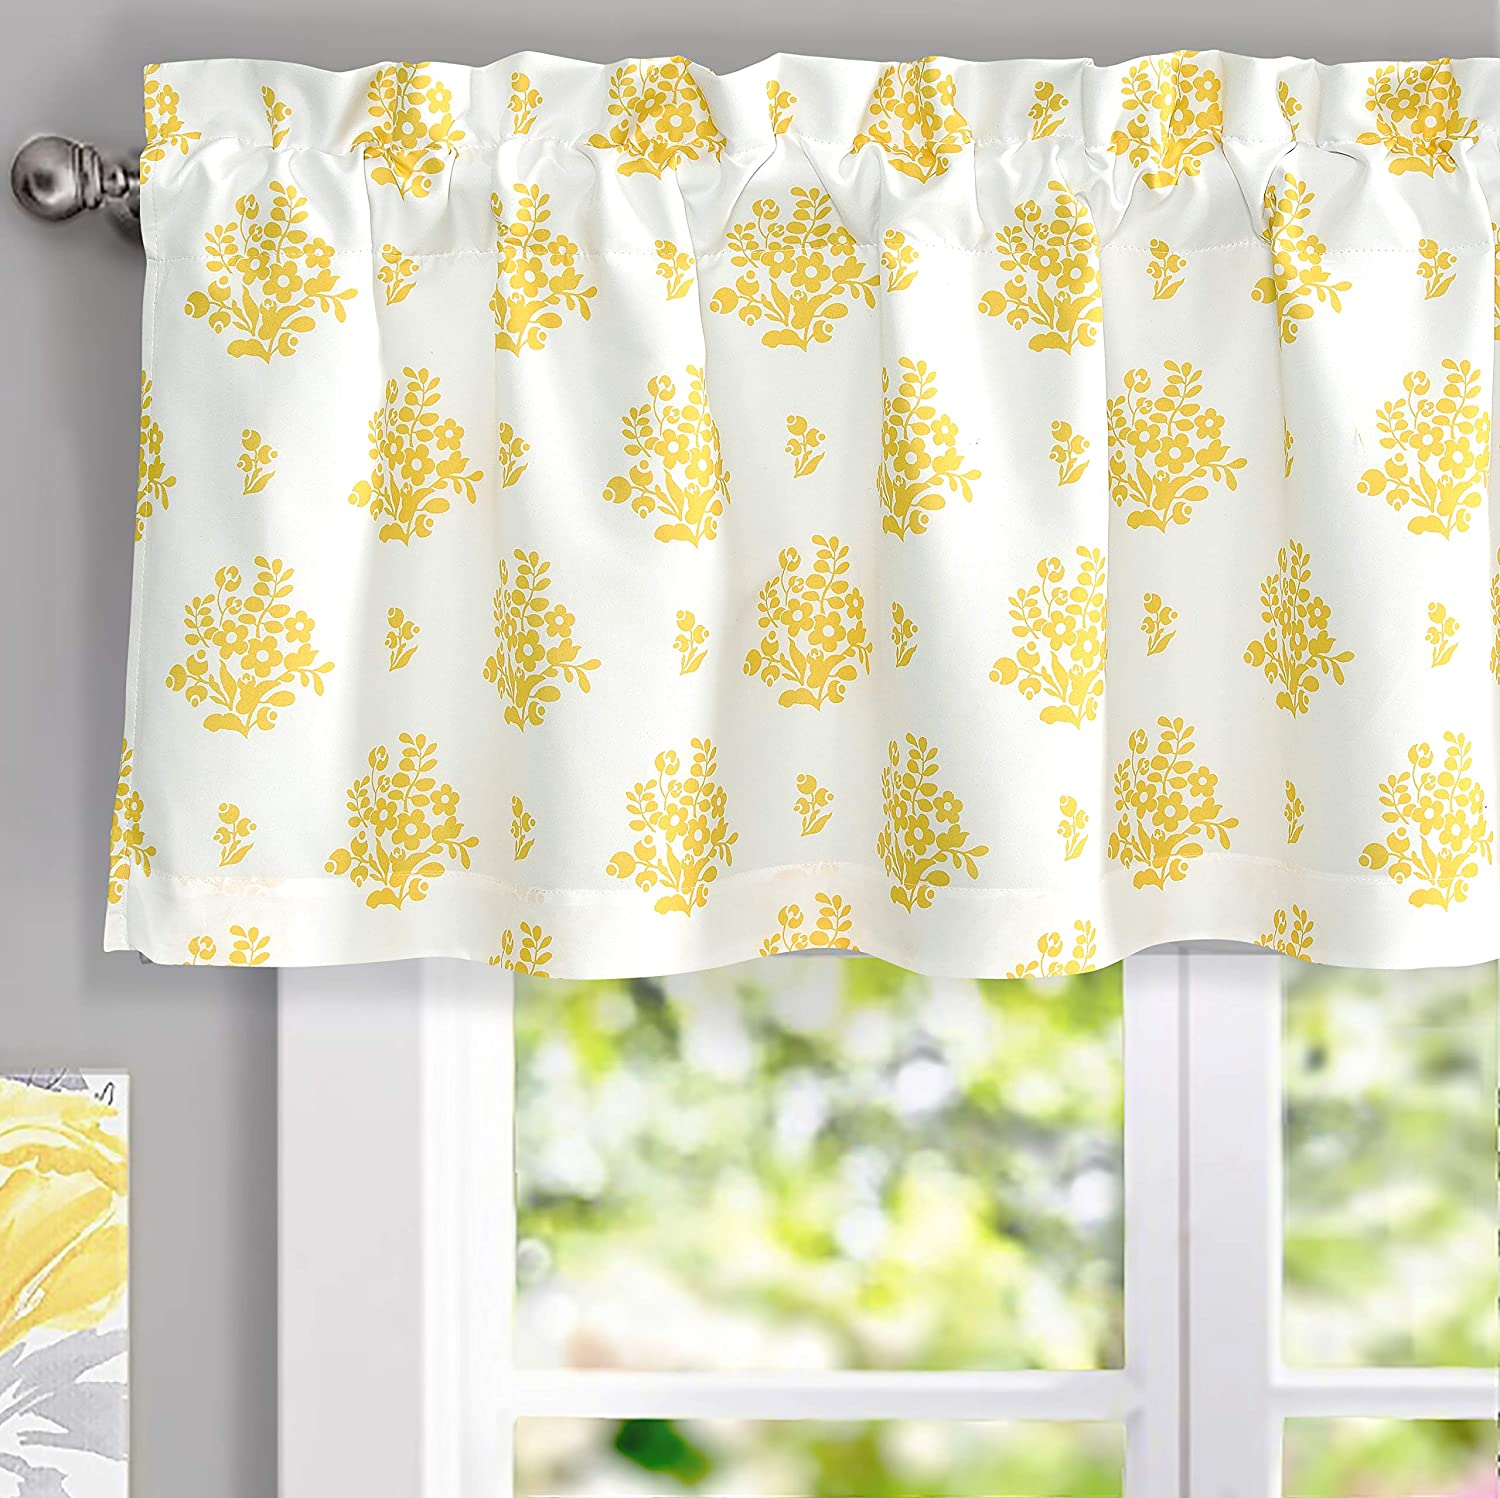 DriftAway Rina Vintage Floral Botanical Pattern Thermal Insulated Lined Rod Pocket Window Curtain Valance for Kitchen Café Living Room 52 Inch by 18 Inch Plus 2 Inch Header Yellow